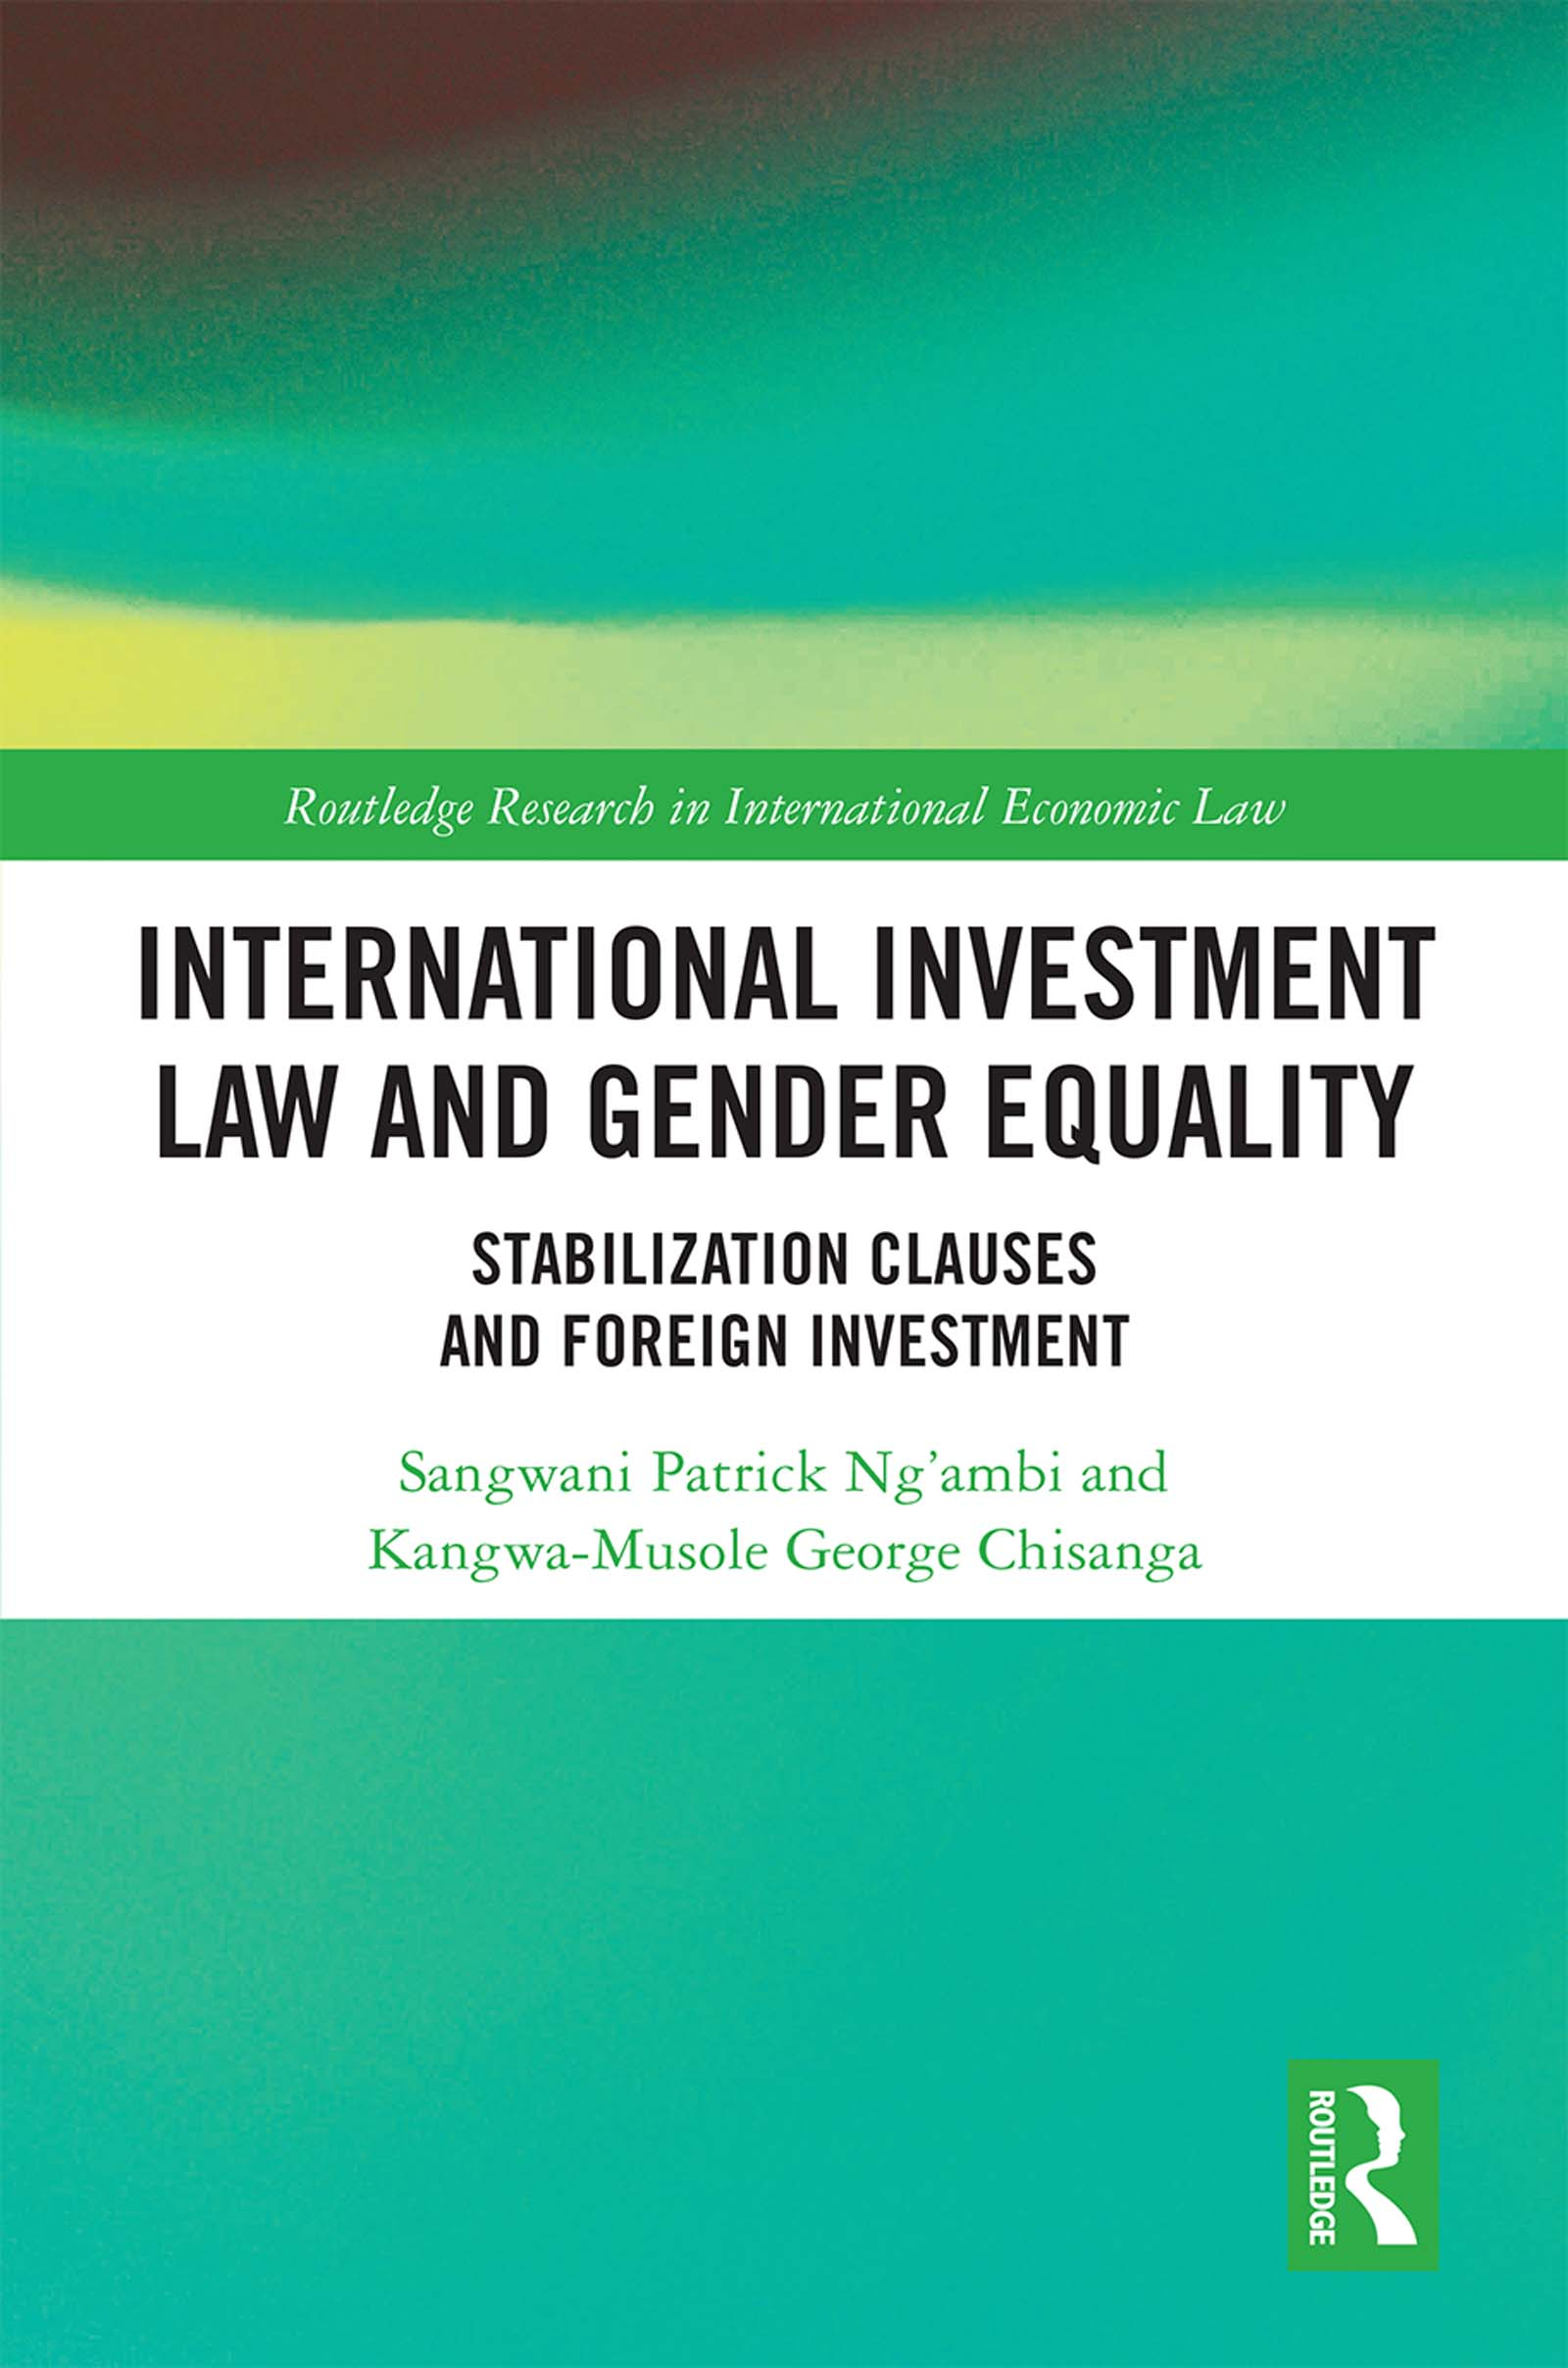 International Investment Law and Gender Equality: Stabilization Clauses and Foreign Investment book cover